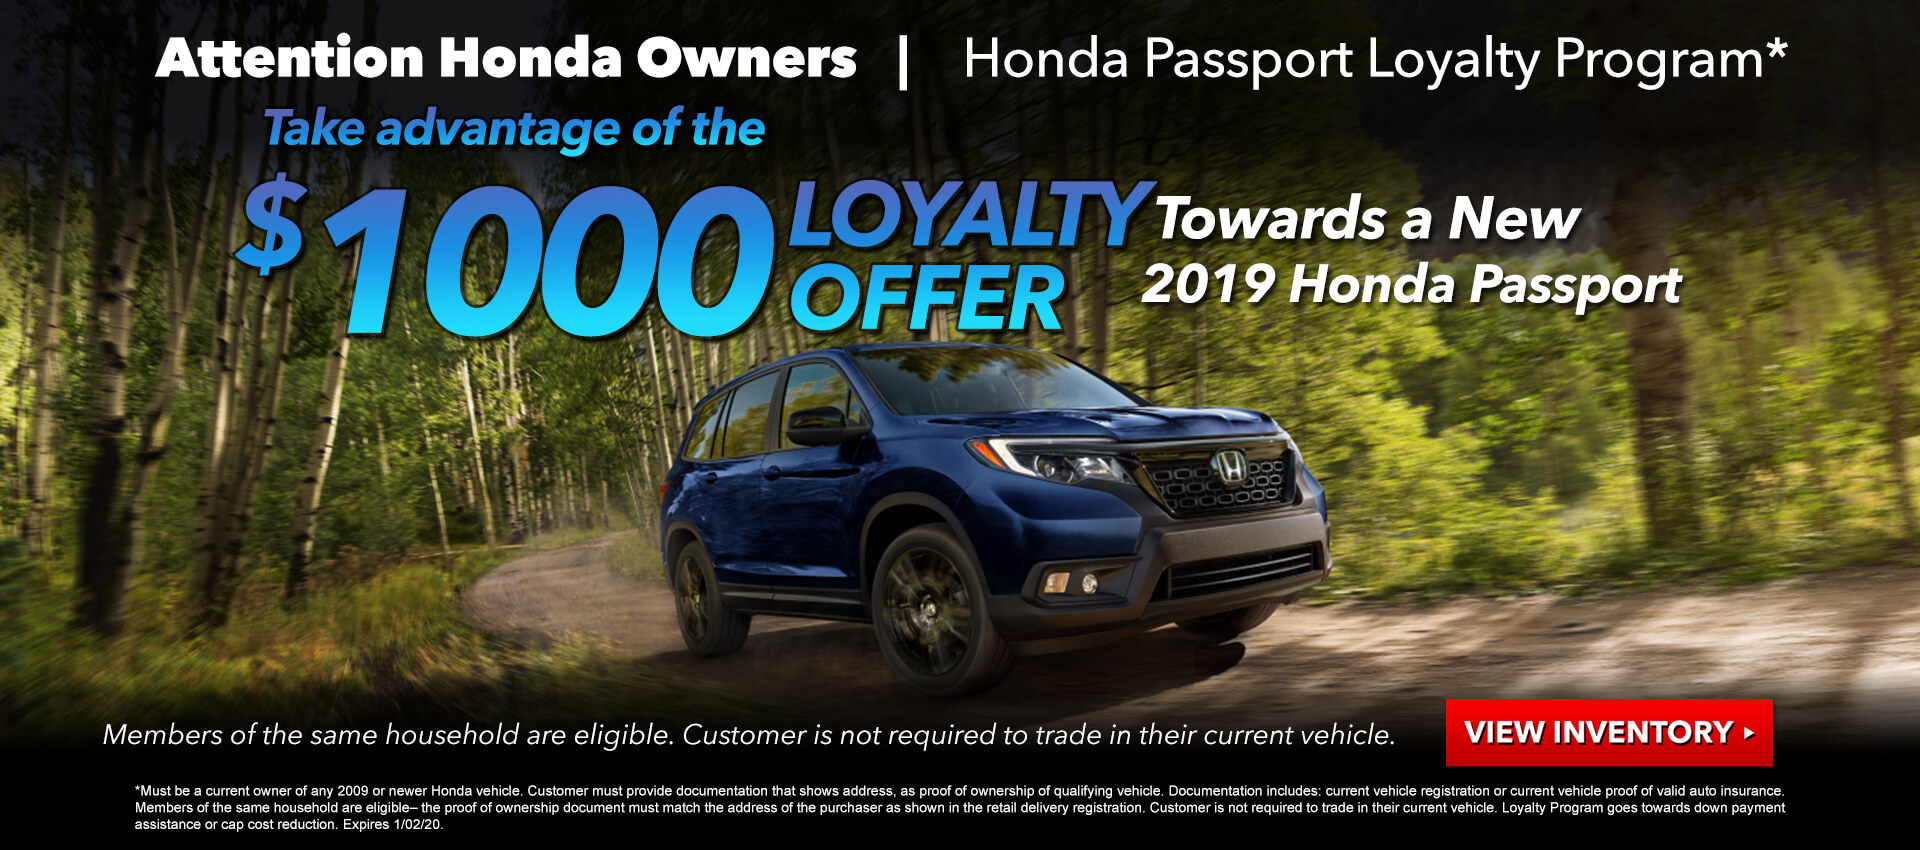 Honda Passport Loyalty Program